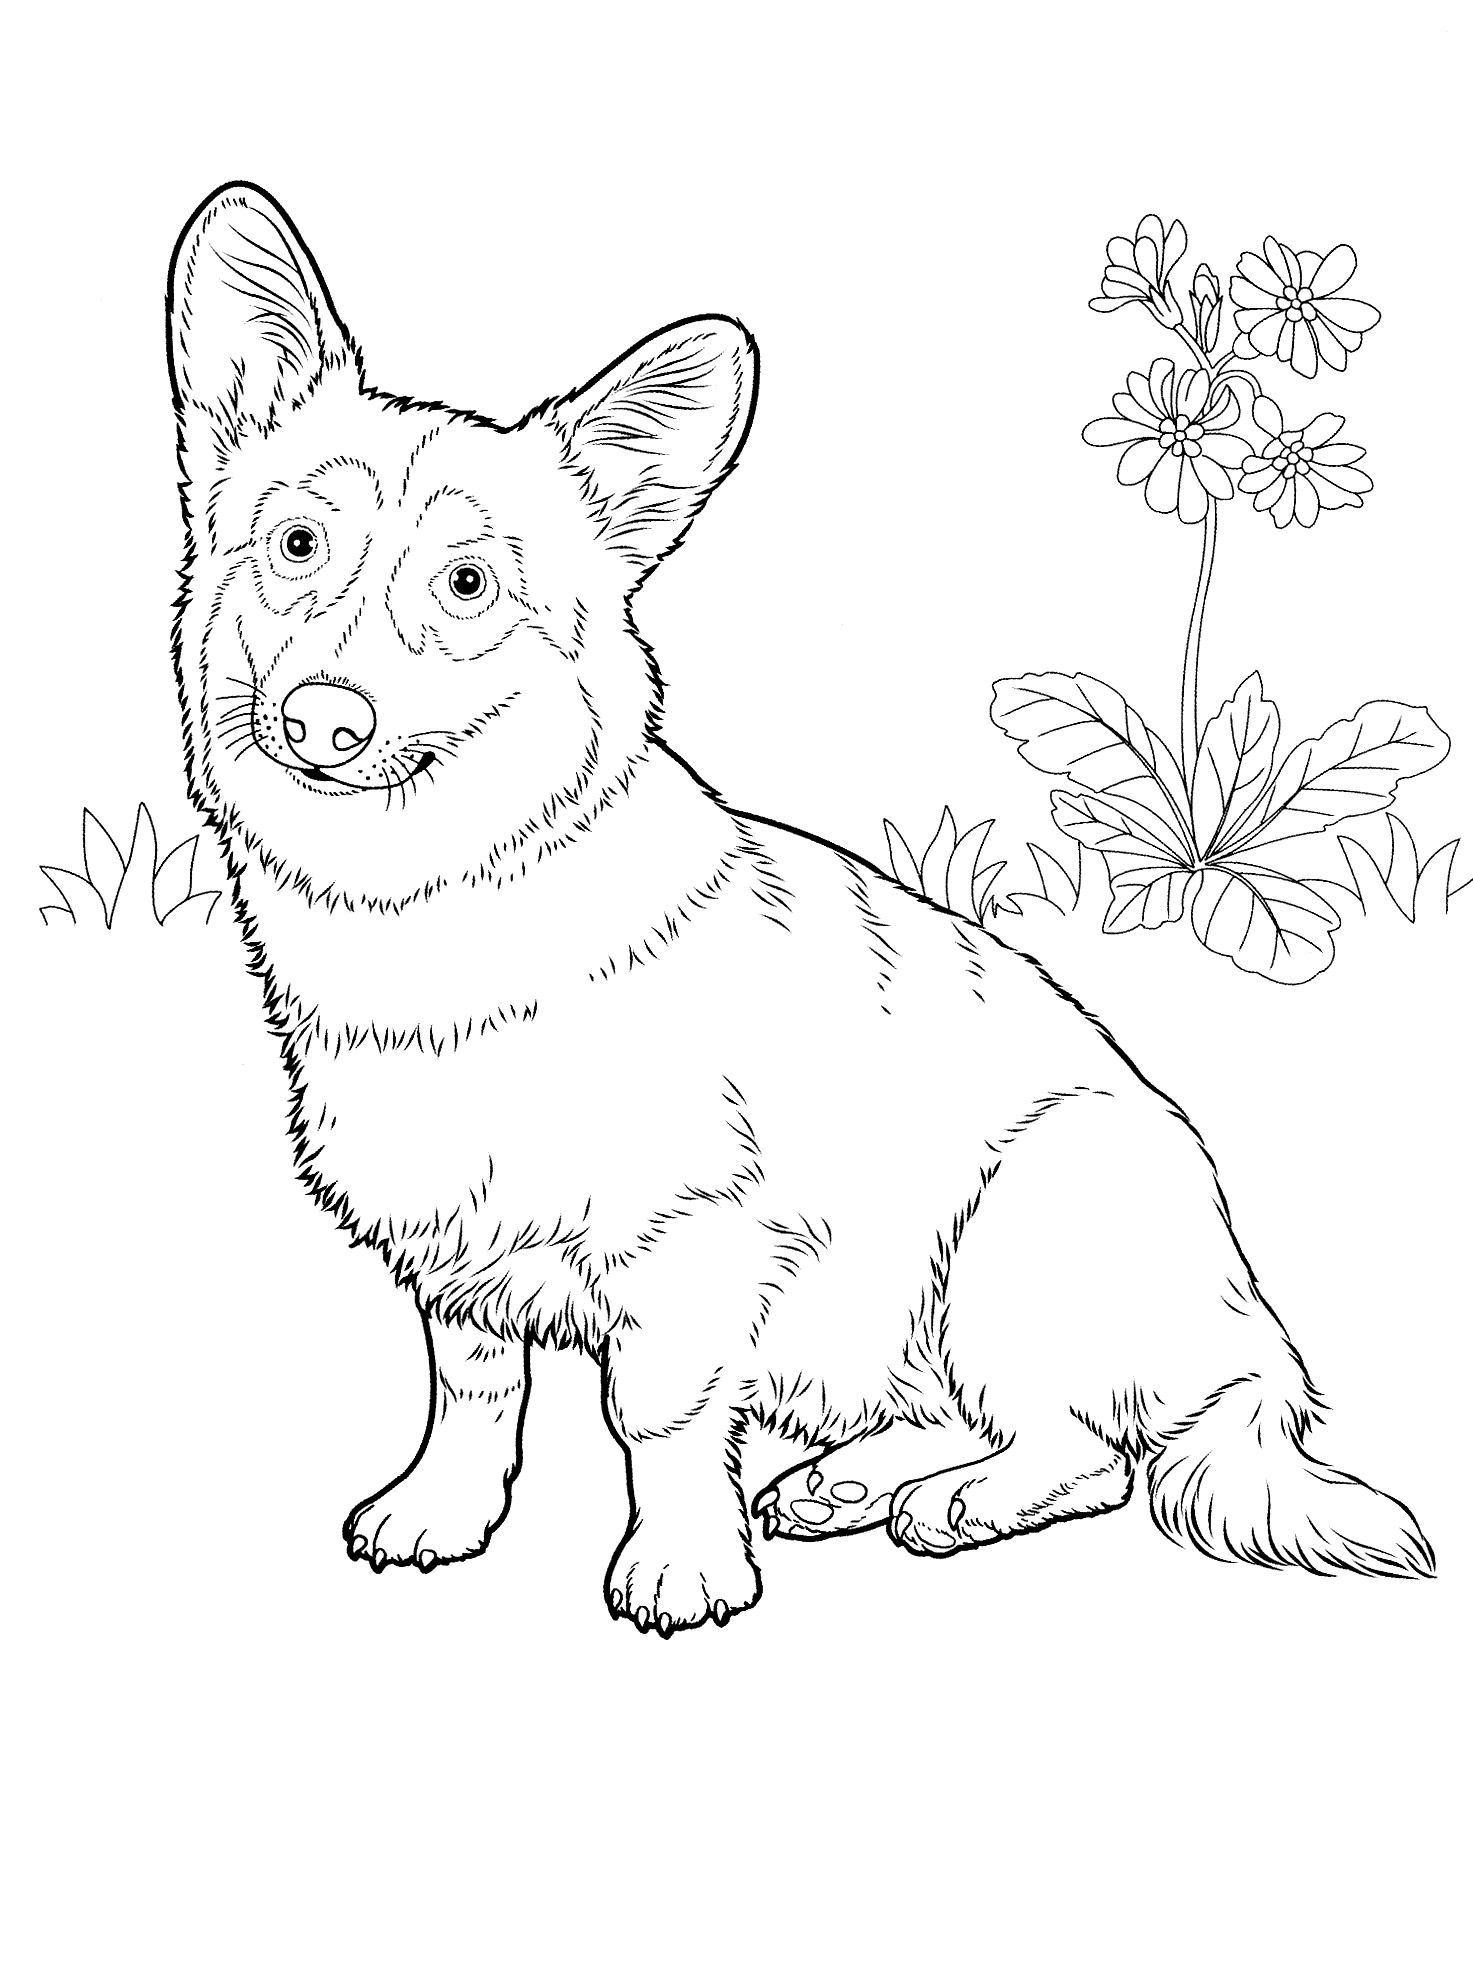 1473x1983 Dog Coloring Pages Teenagers Coloring Pages Adult Coloring